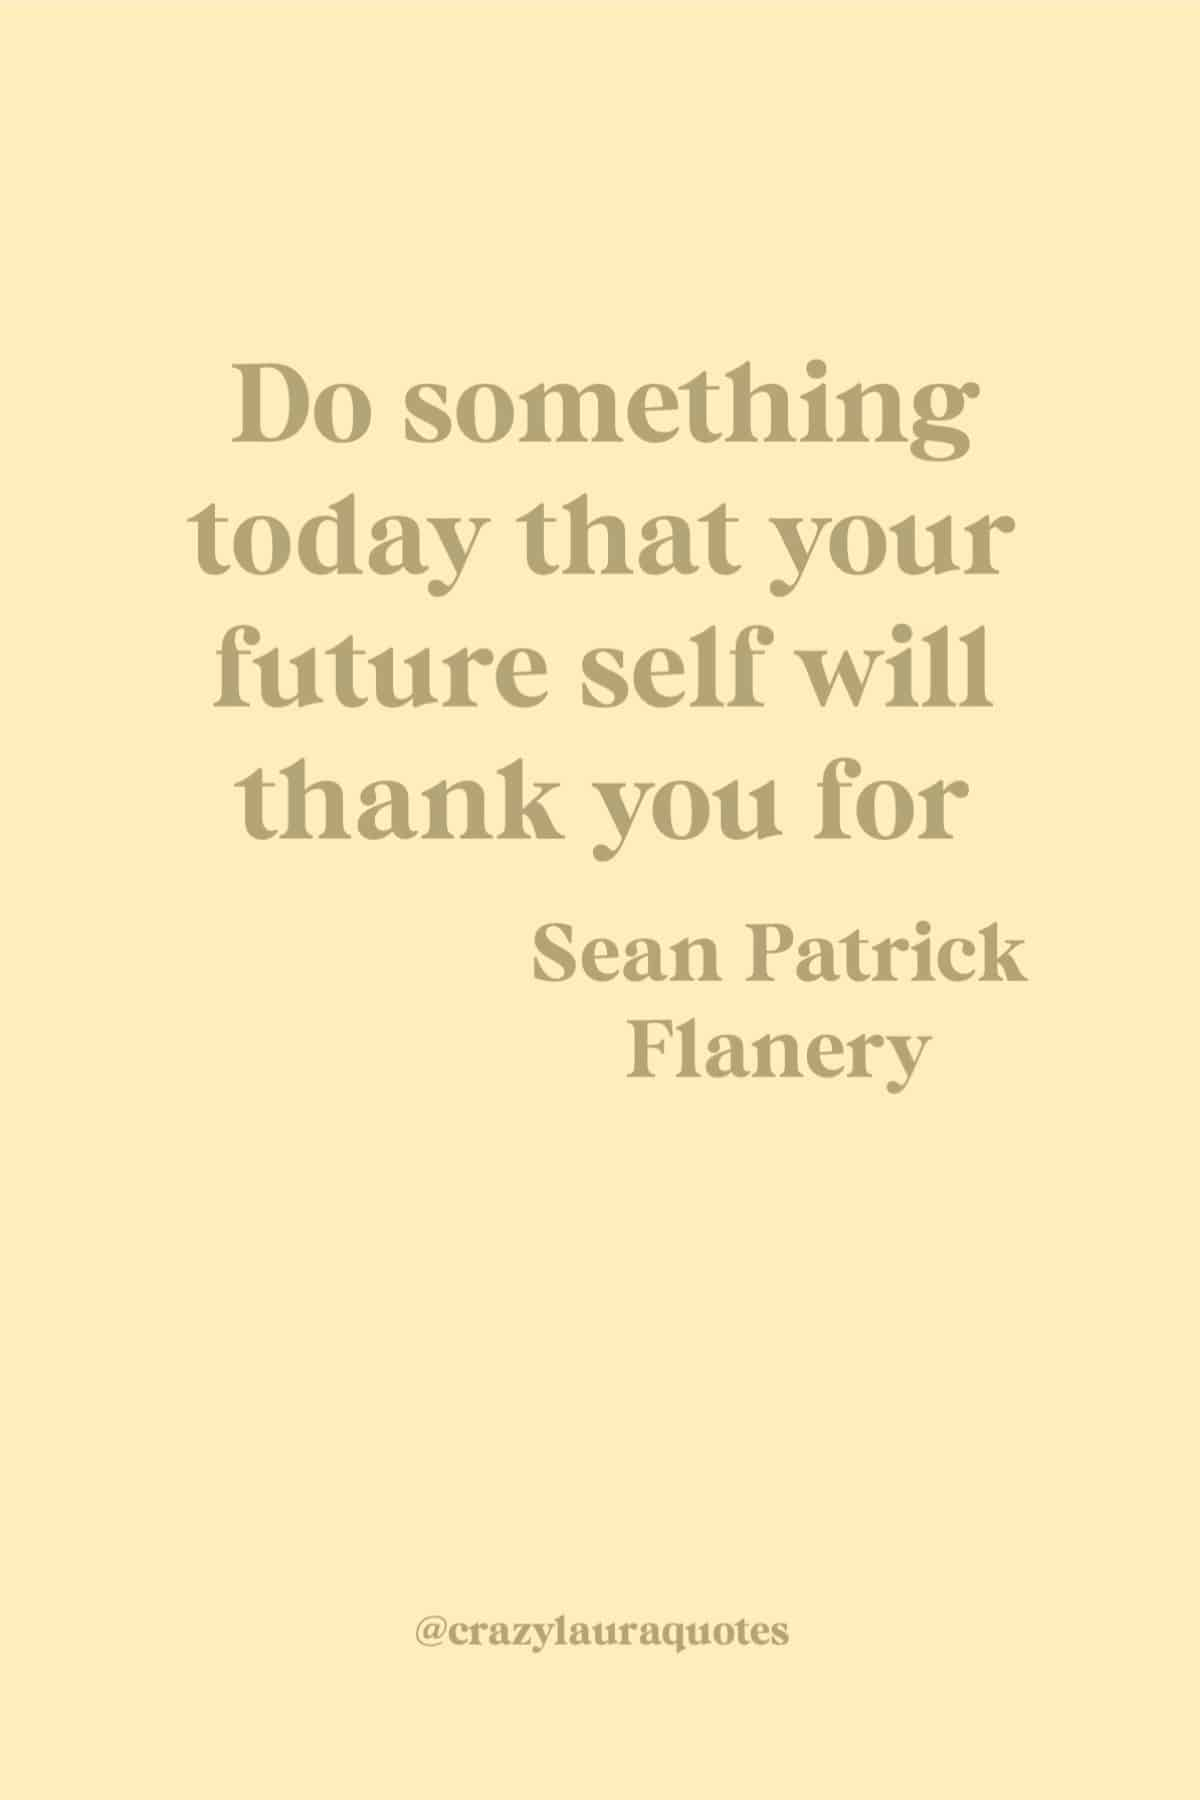 fitness quote about the future you